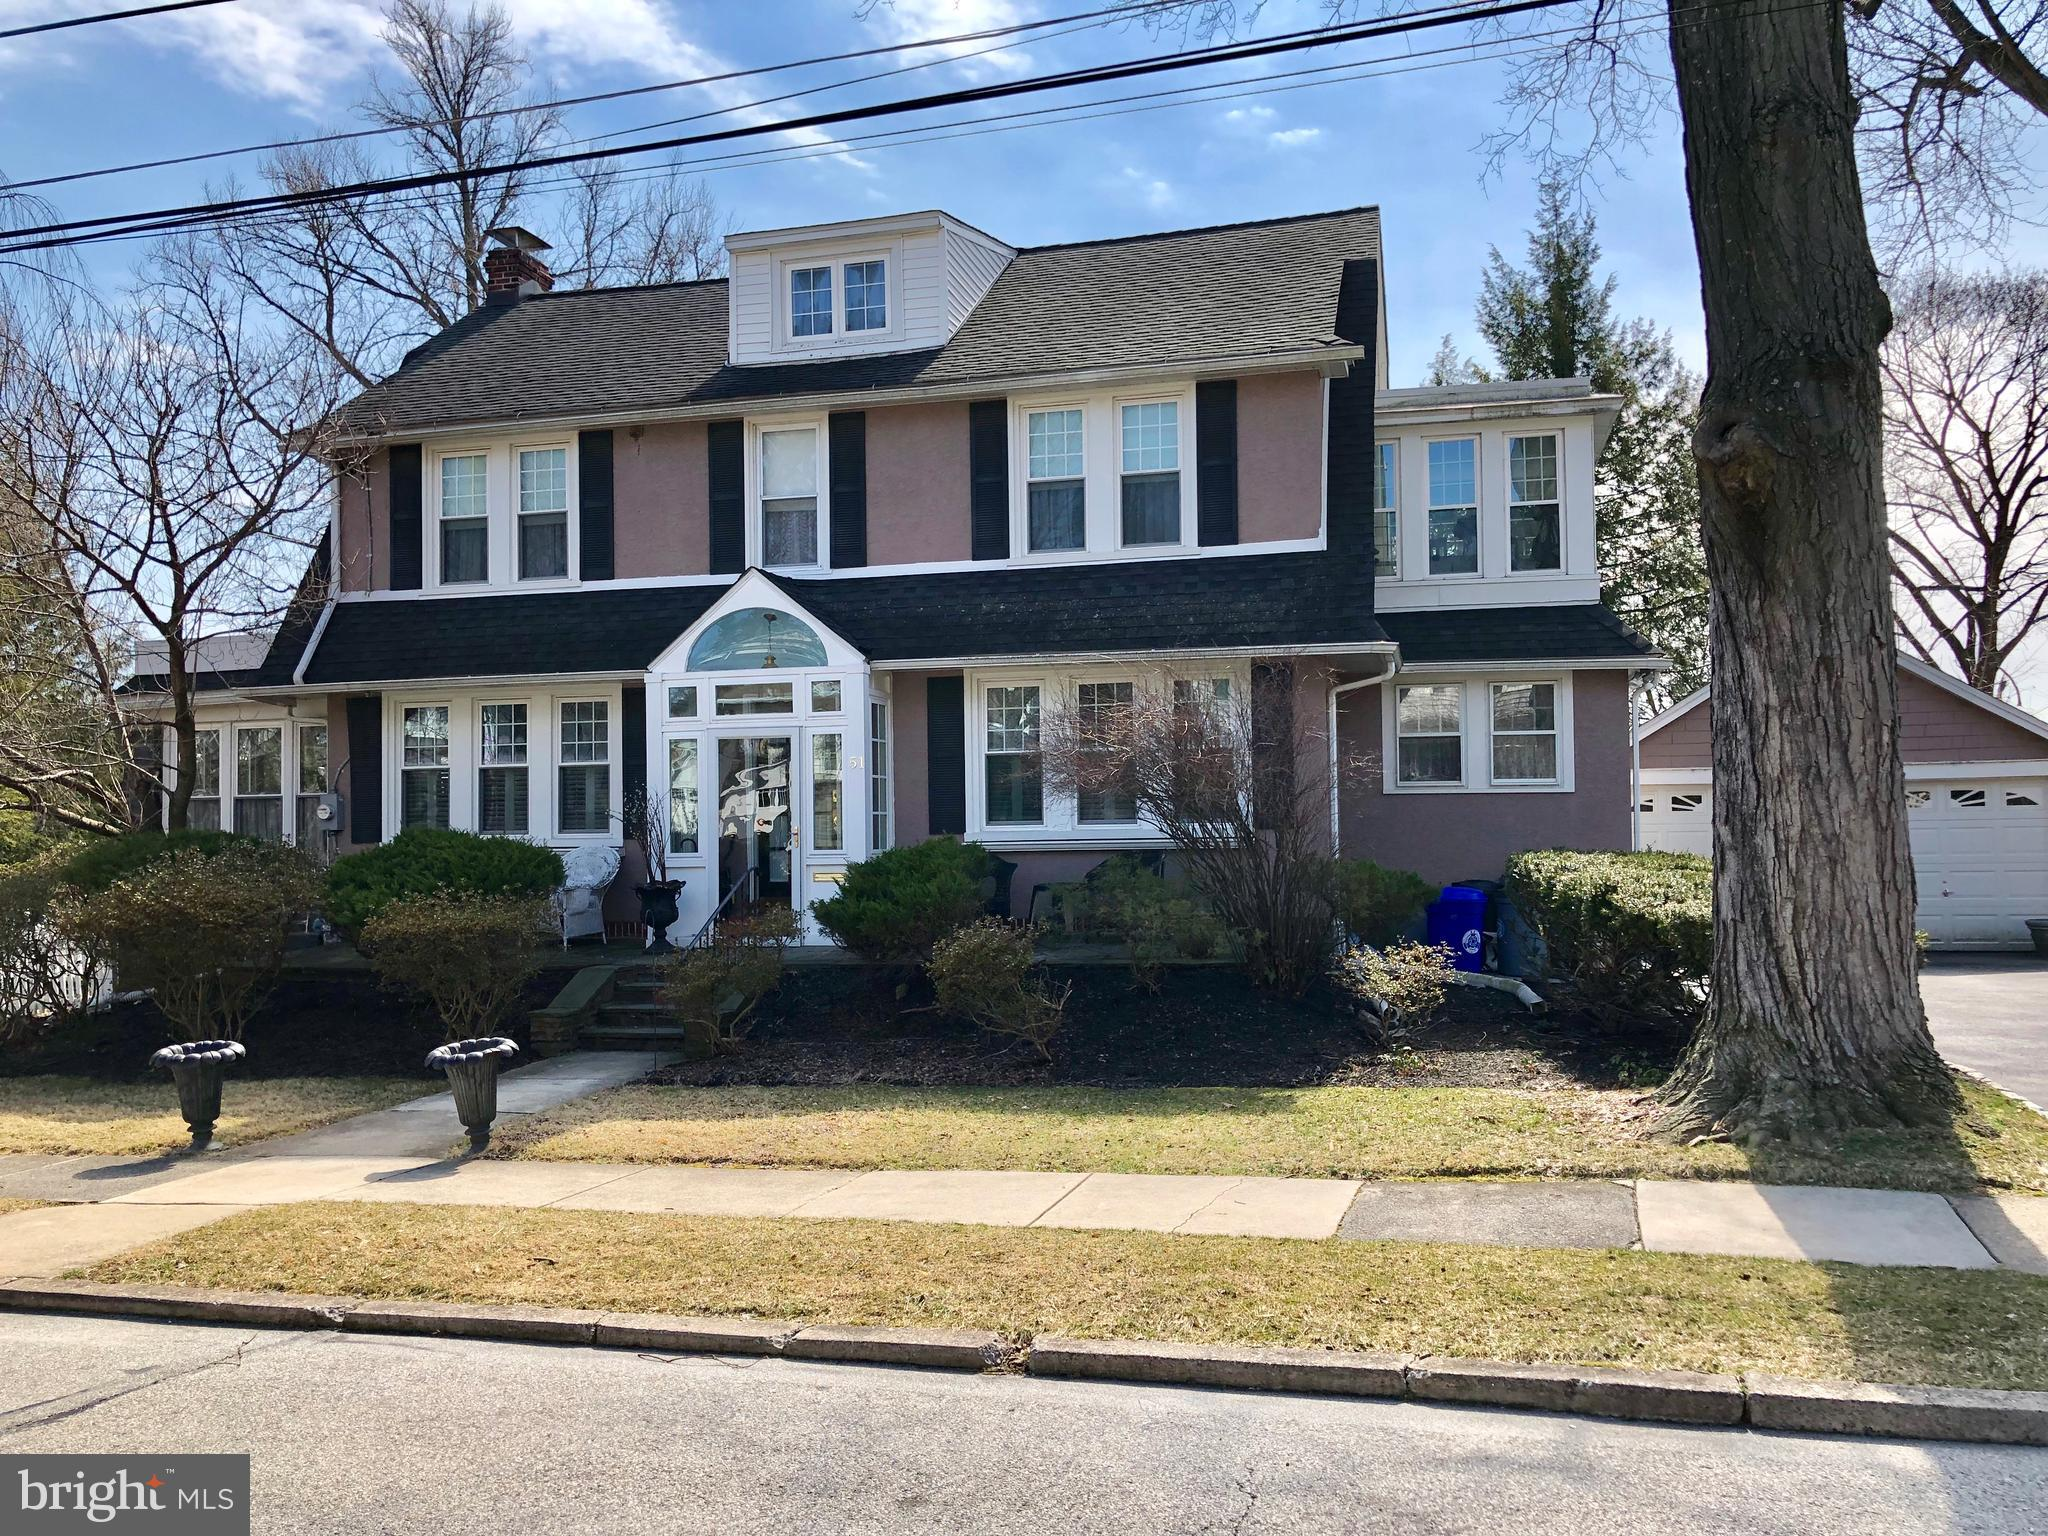 51 E CLEARFIELD ROAD, HAVERTOWN, PA 19083